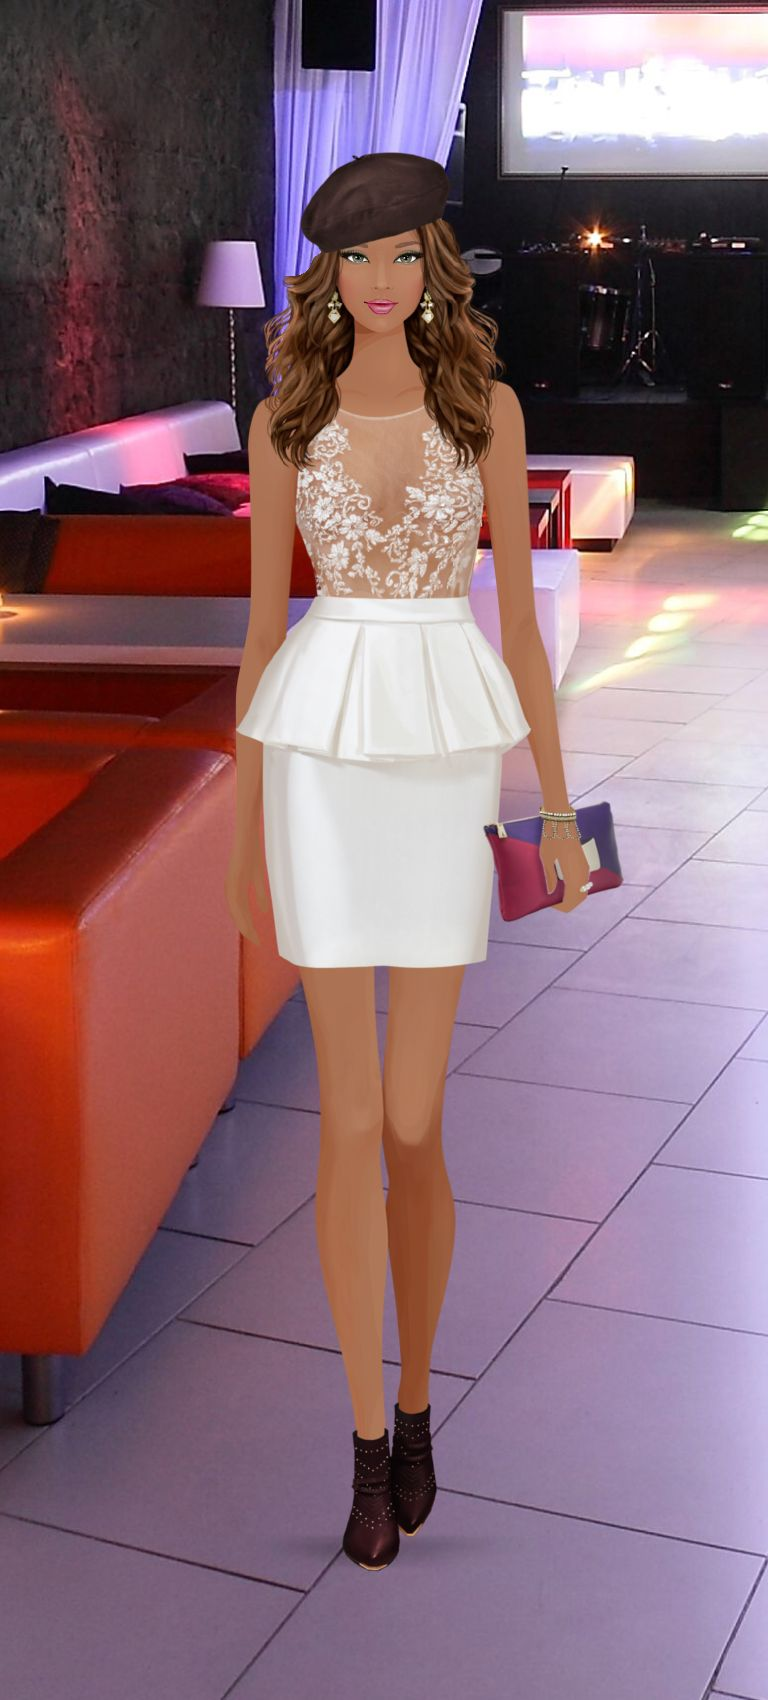 Fashion game outfits that i have made that are cute and adorable